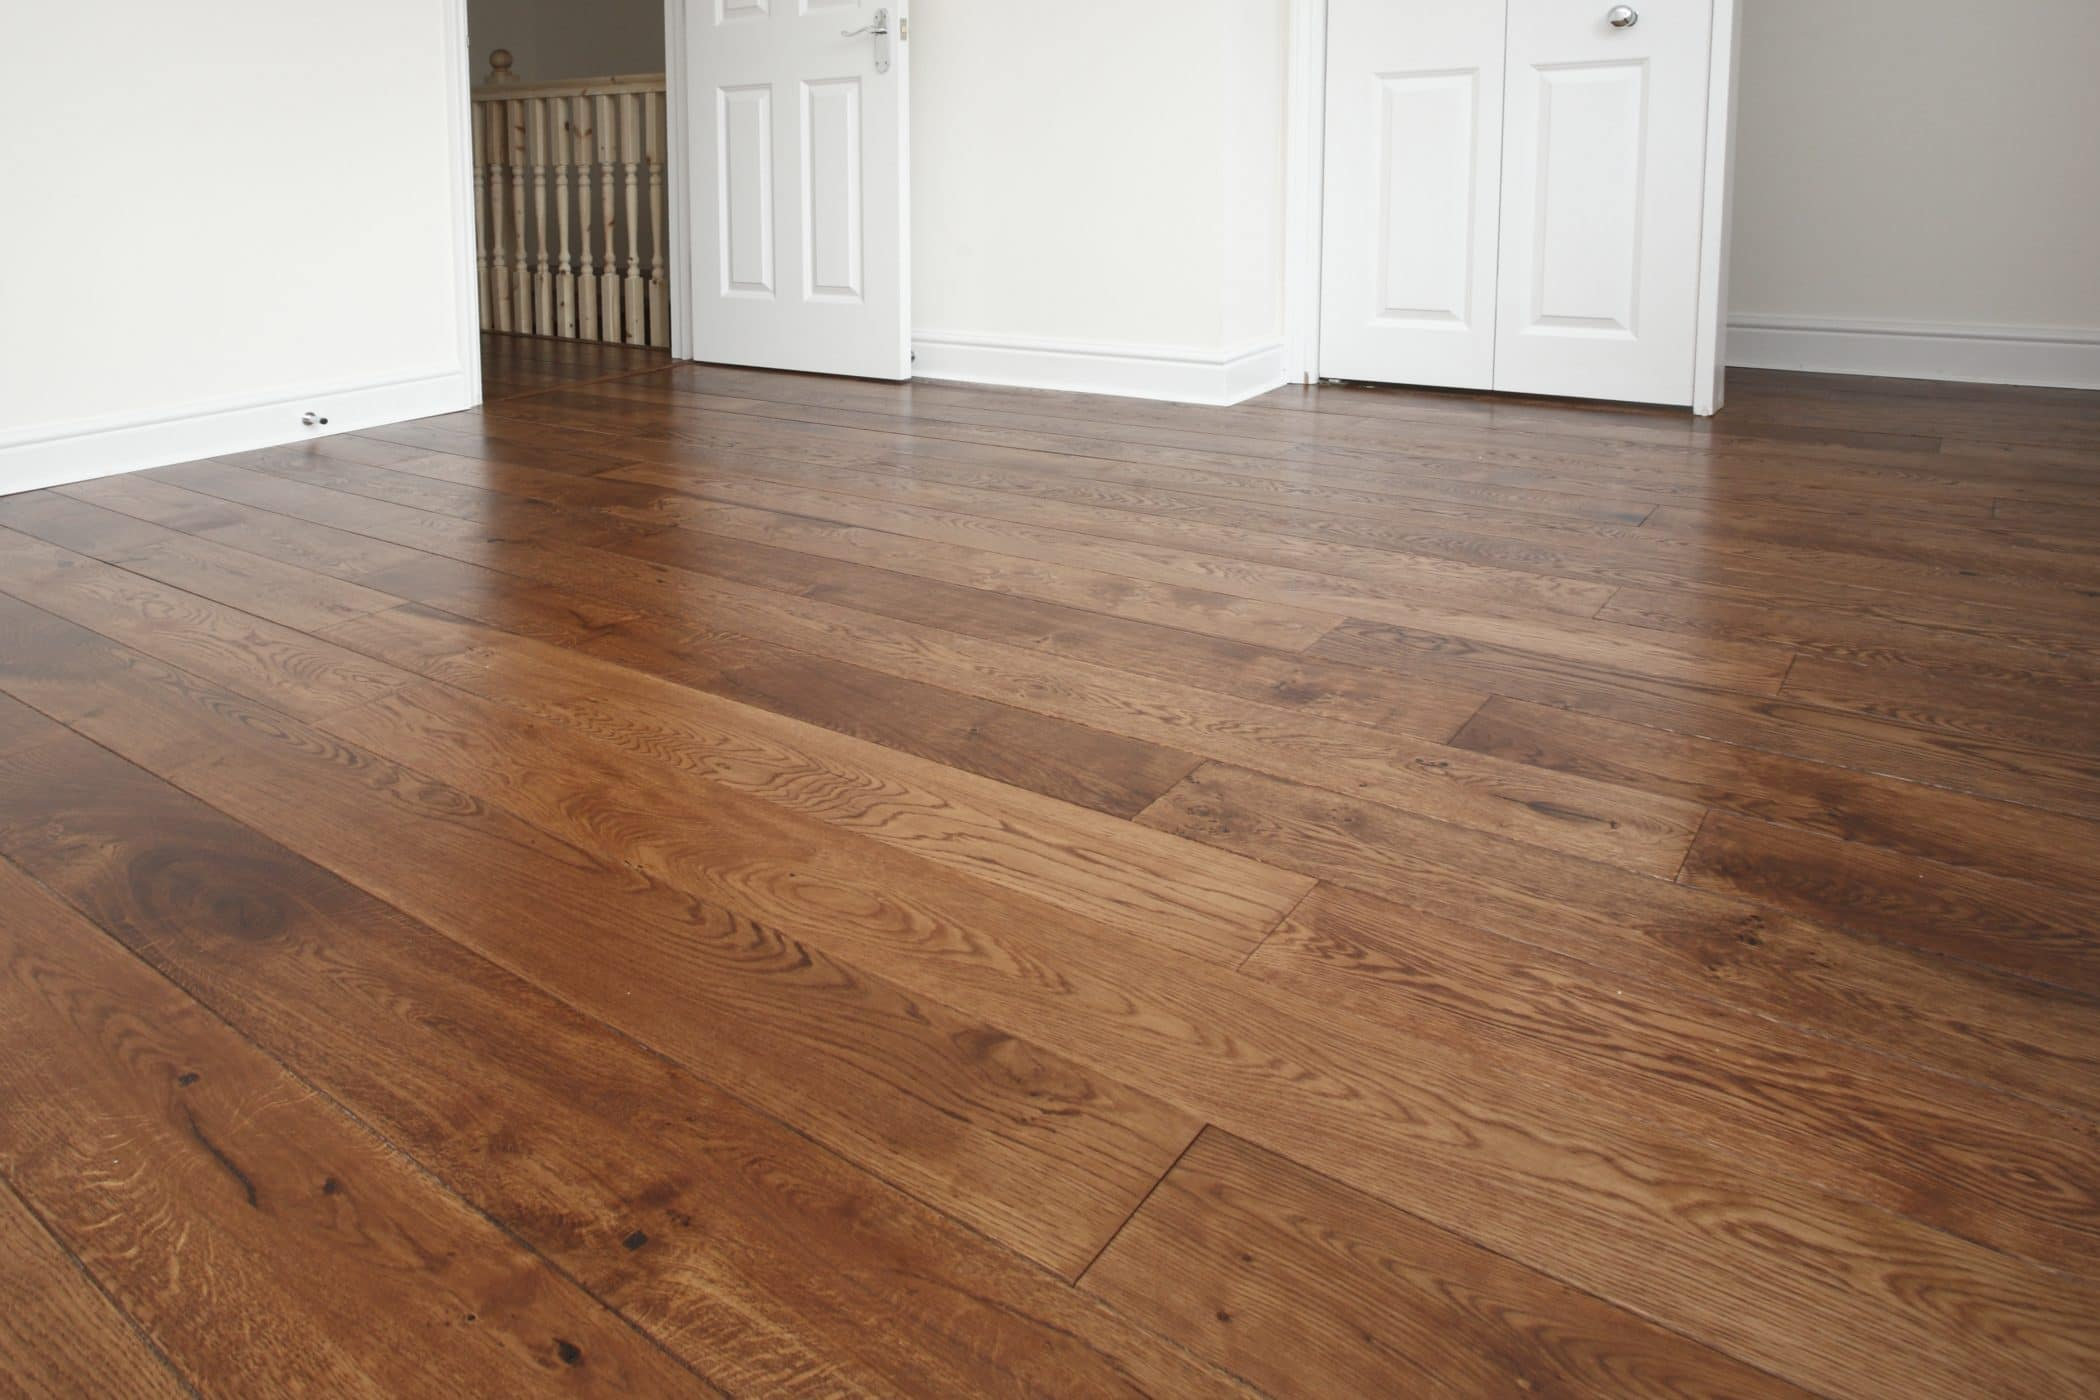 Mg 3715 Uk Wood Floors Amp Bespoke Joinery